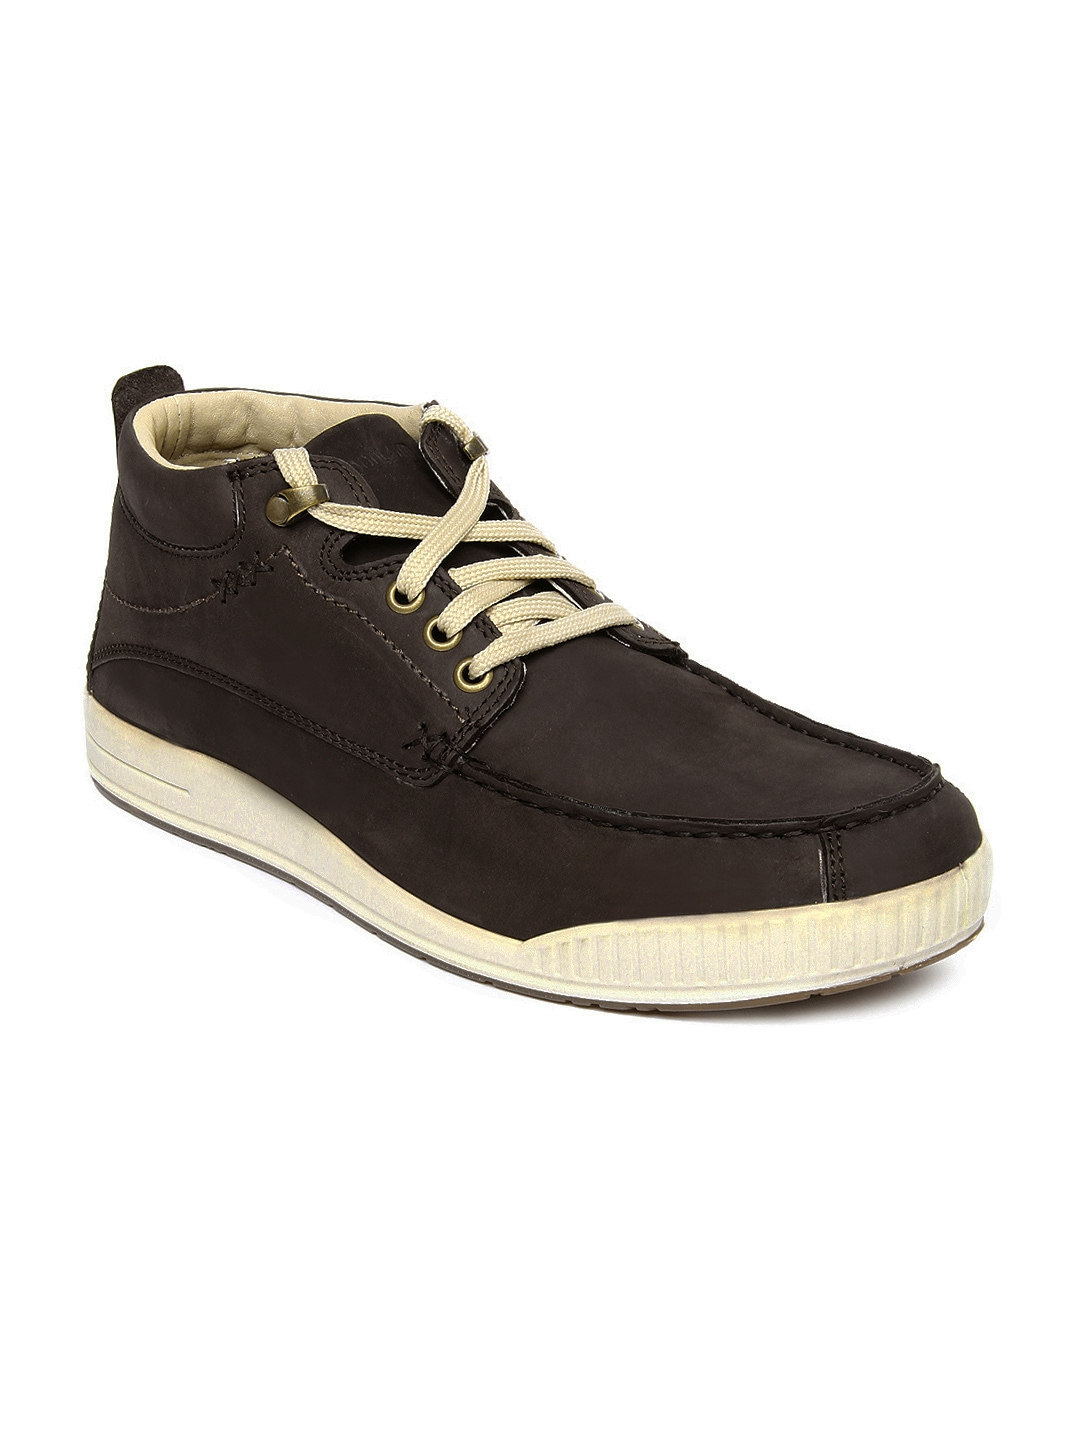 myntra woodland brown leather casual shoes 355629